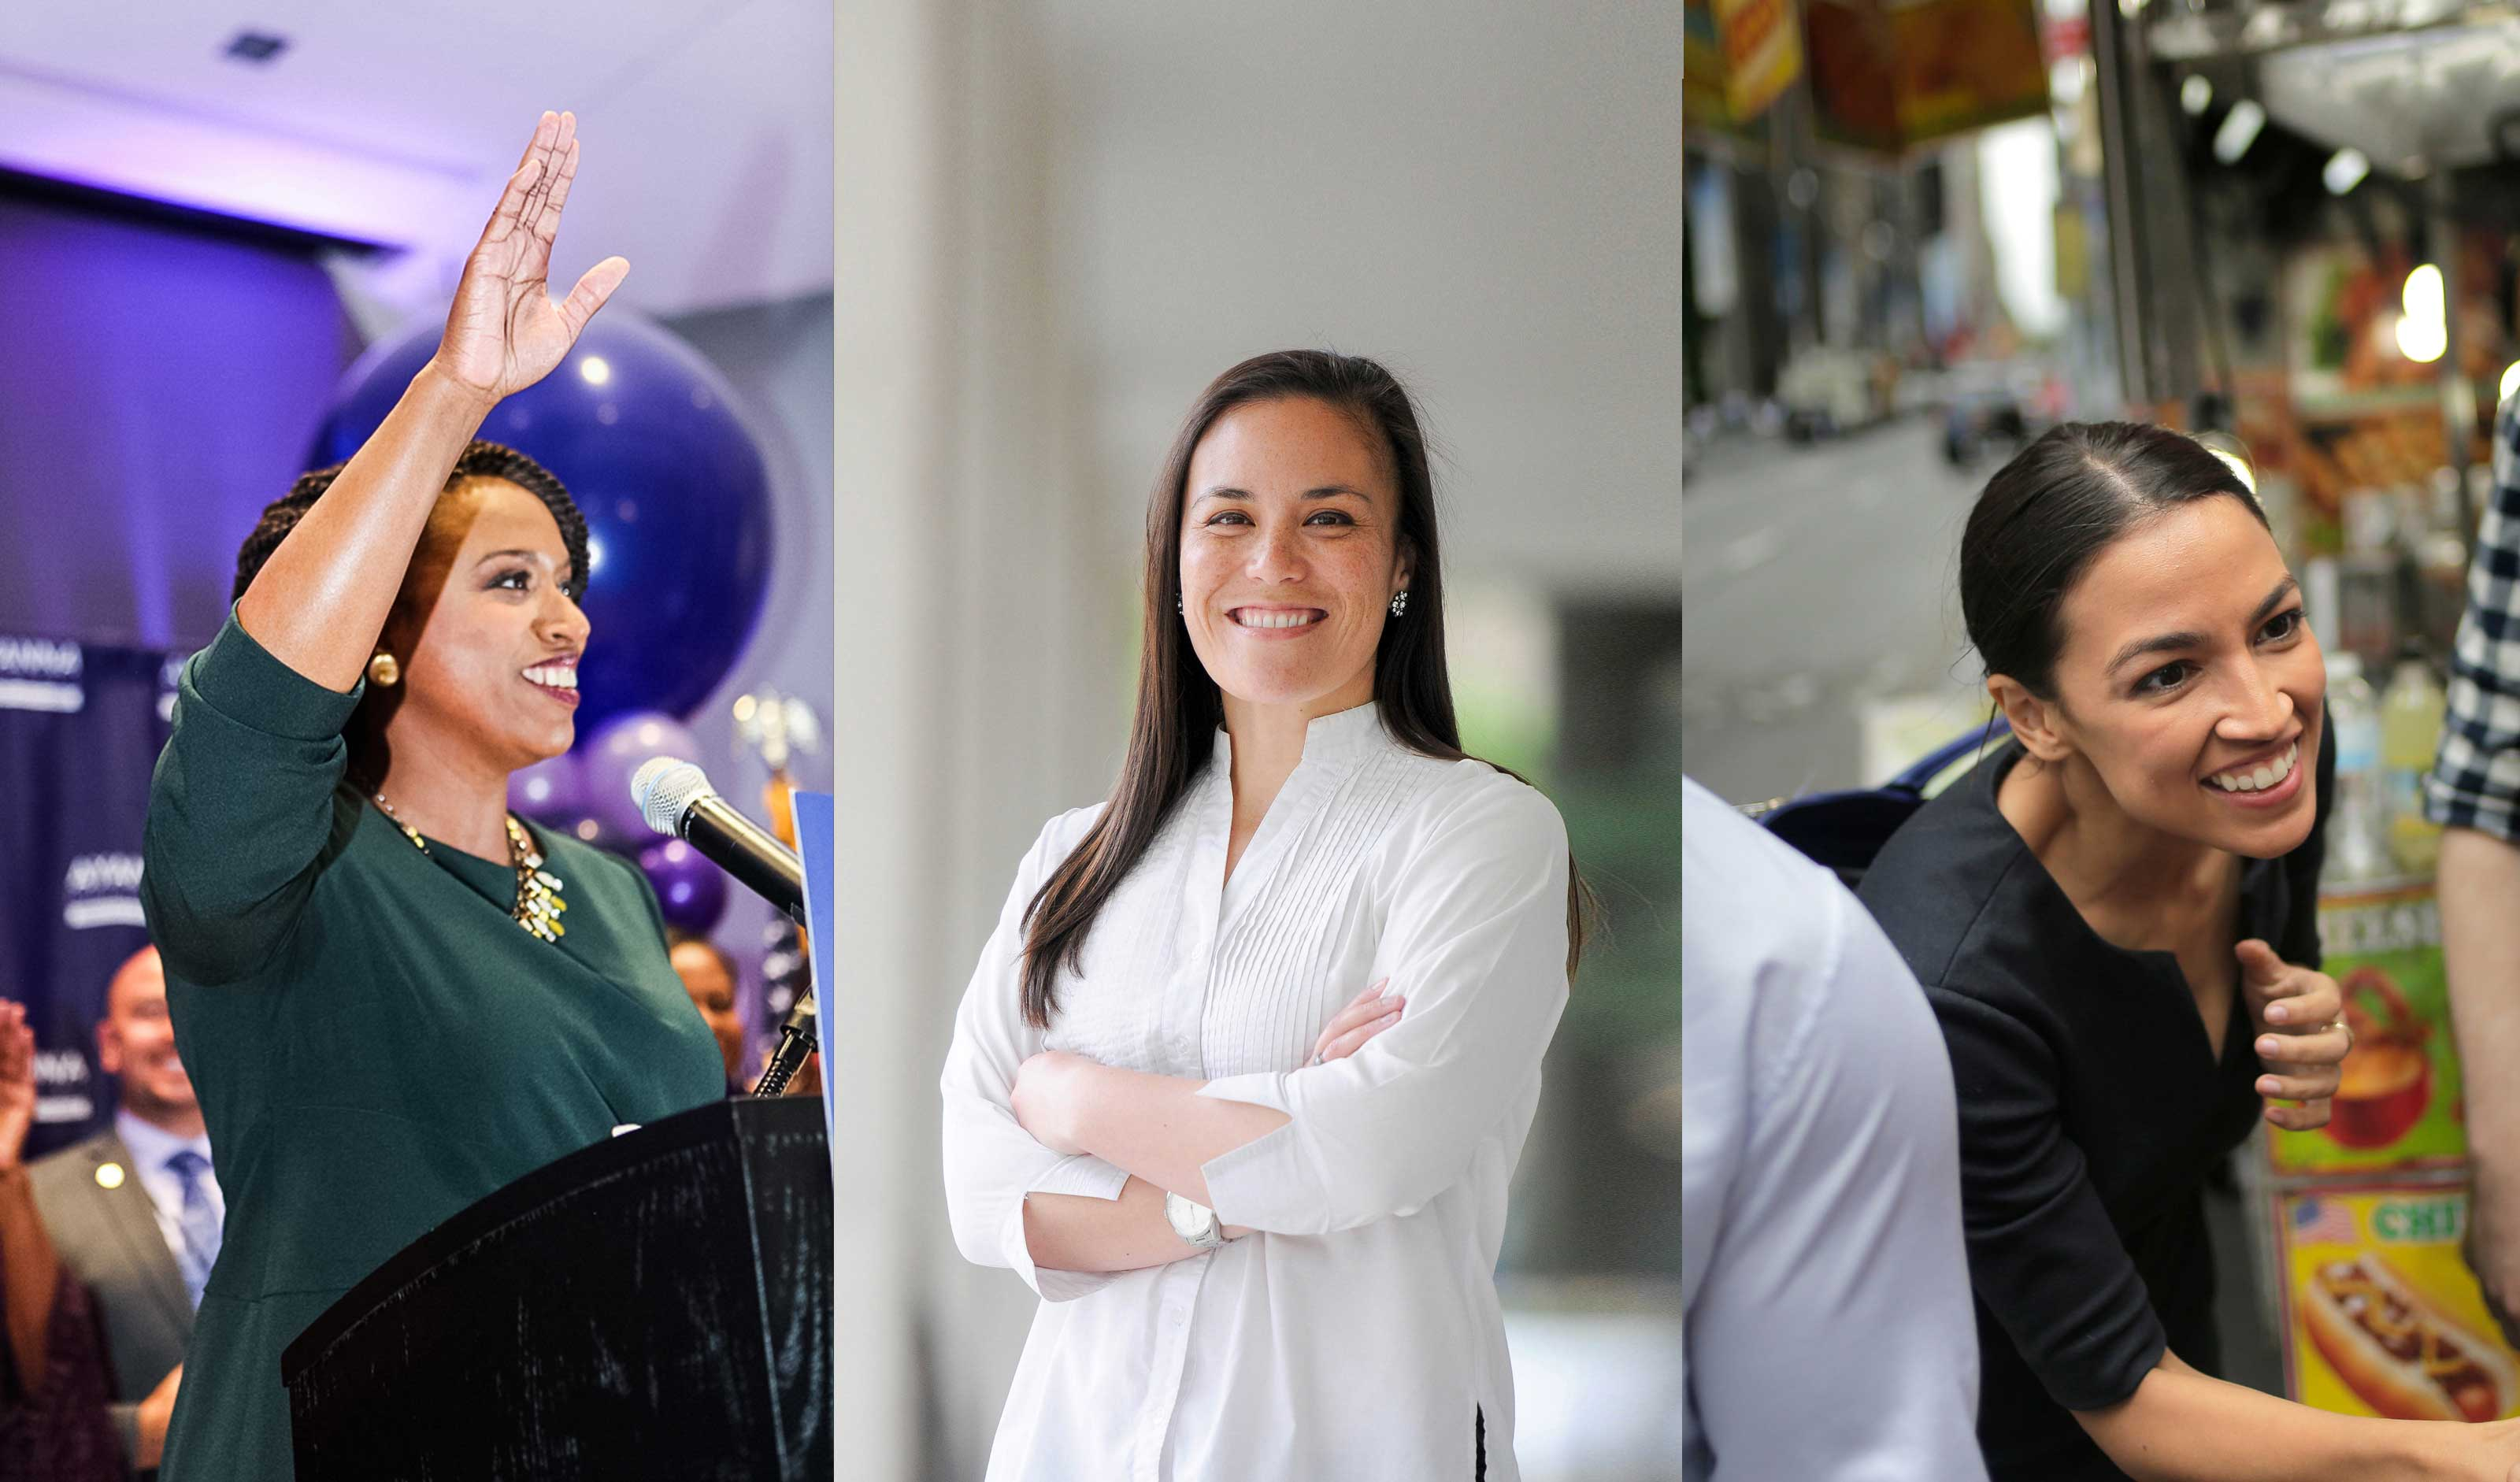 Ayanna Pressley (left), Gina Ortiz Jones (middle), and Alexandria Ocasio-Cortez (right)